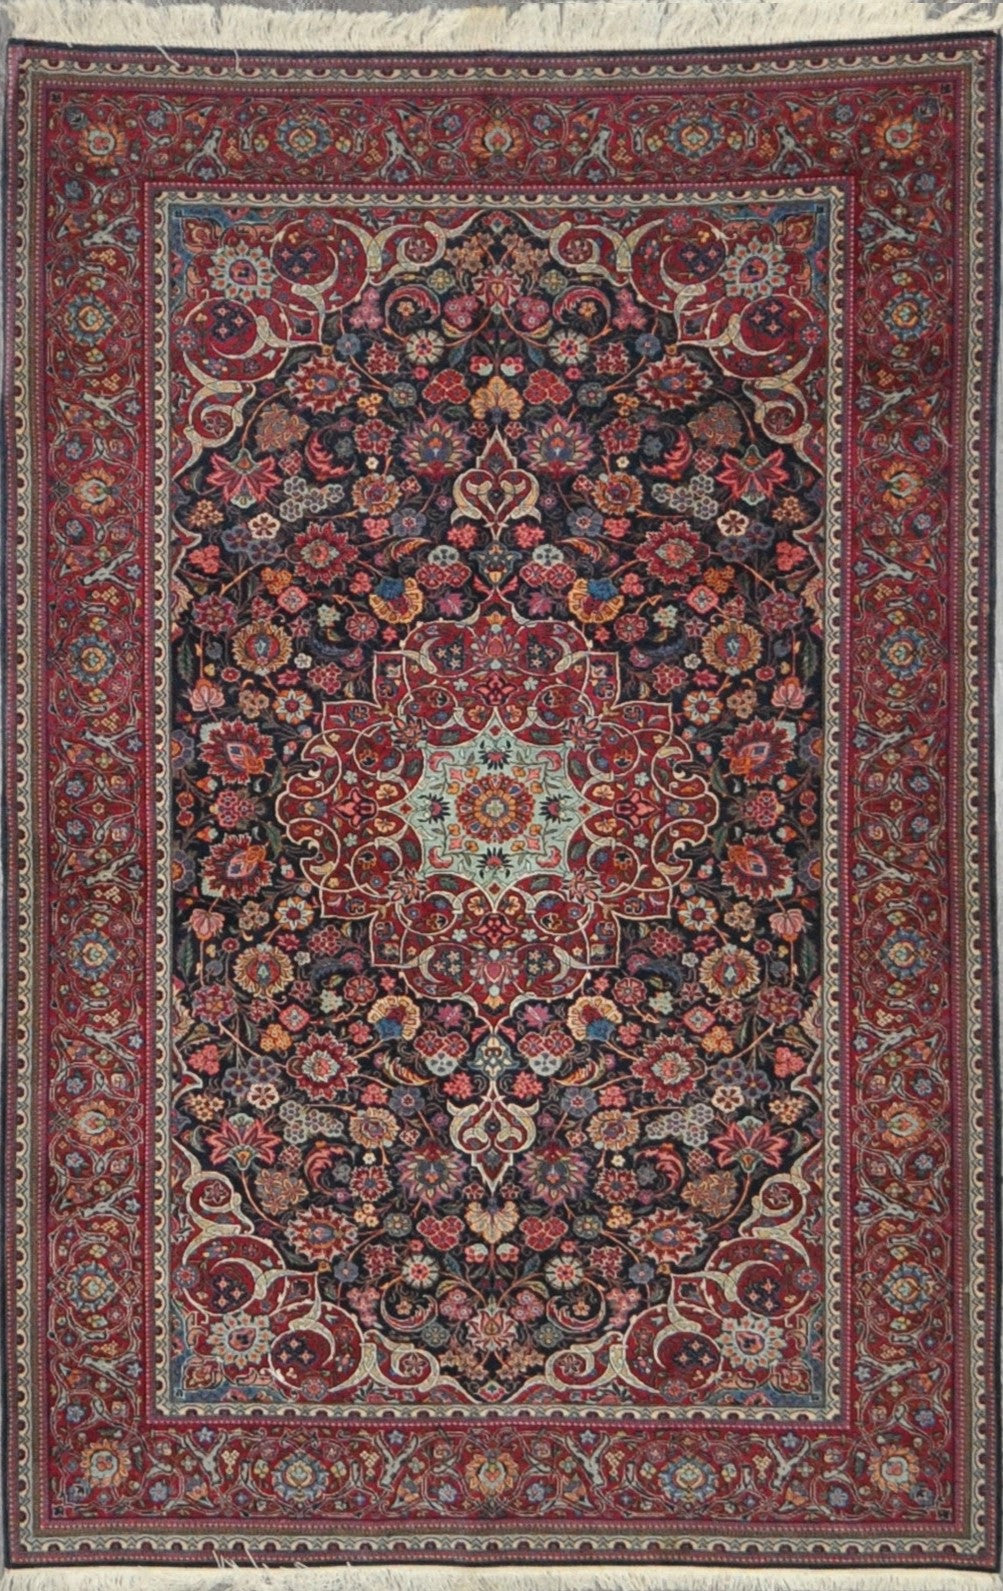 4.10x6.10 Persian antique kashan #52271